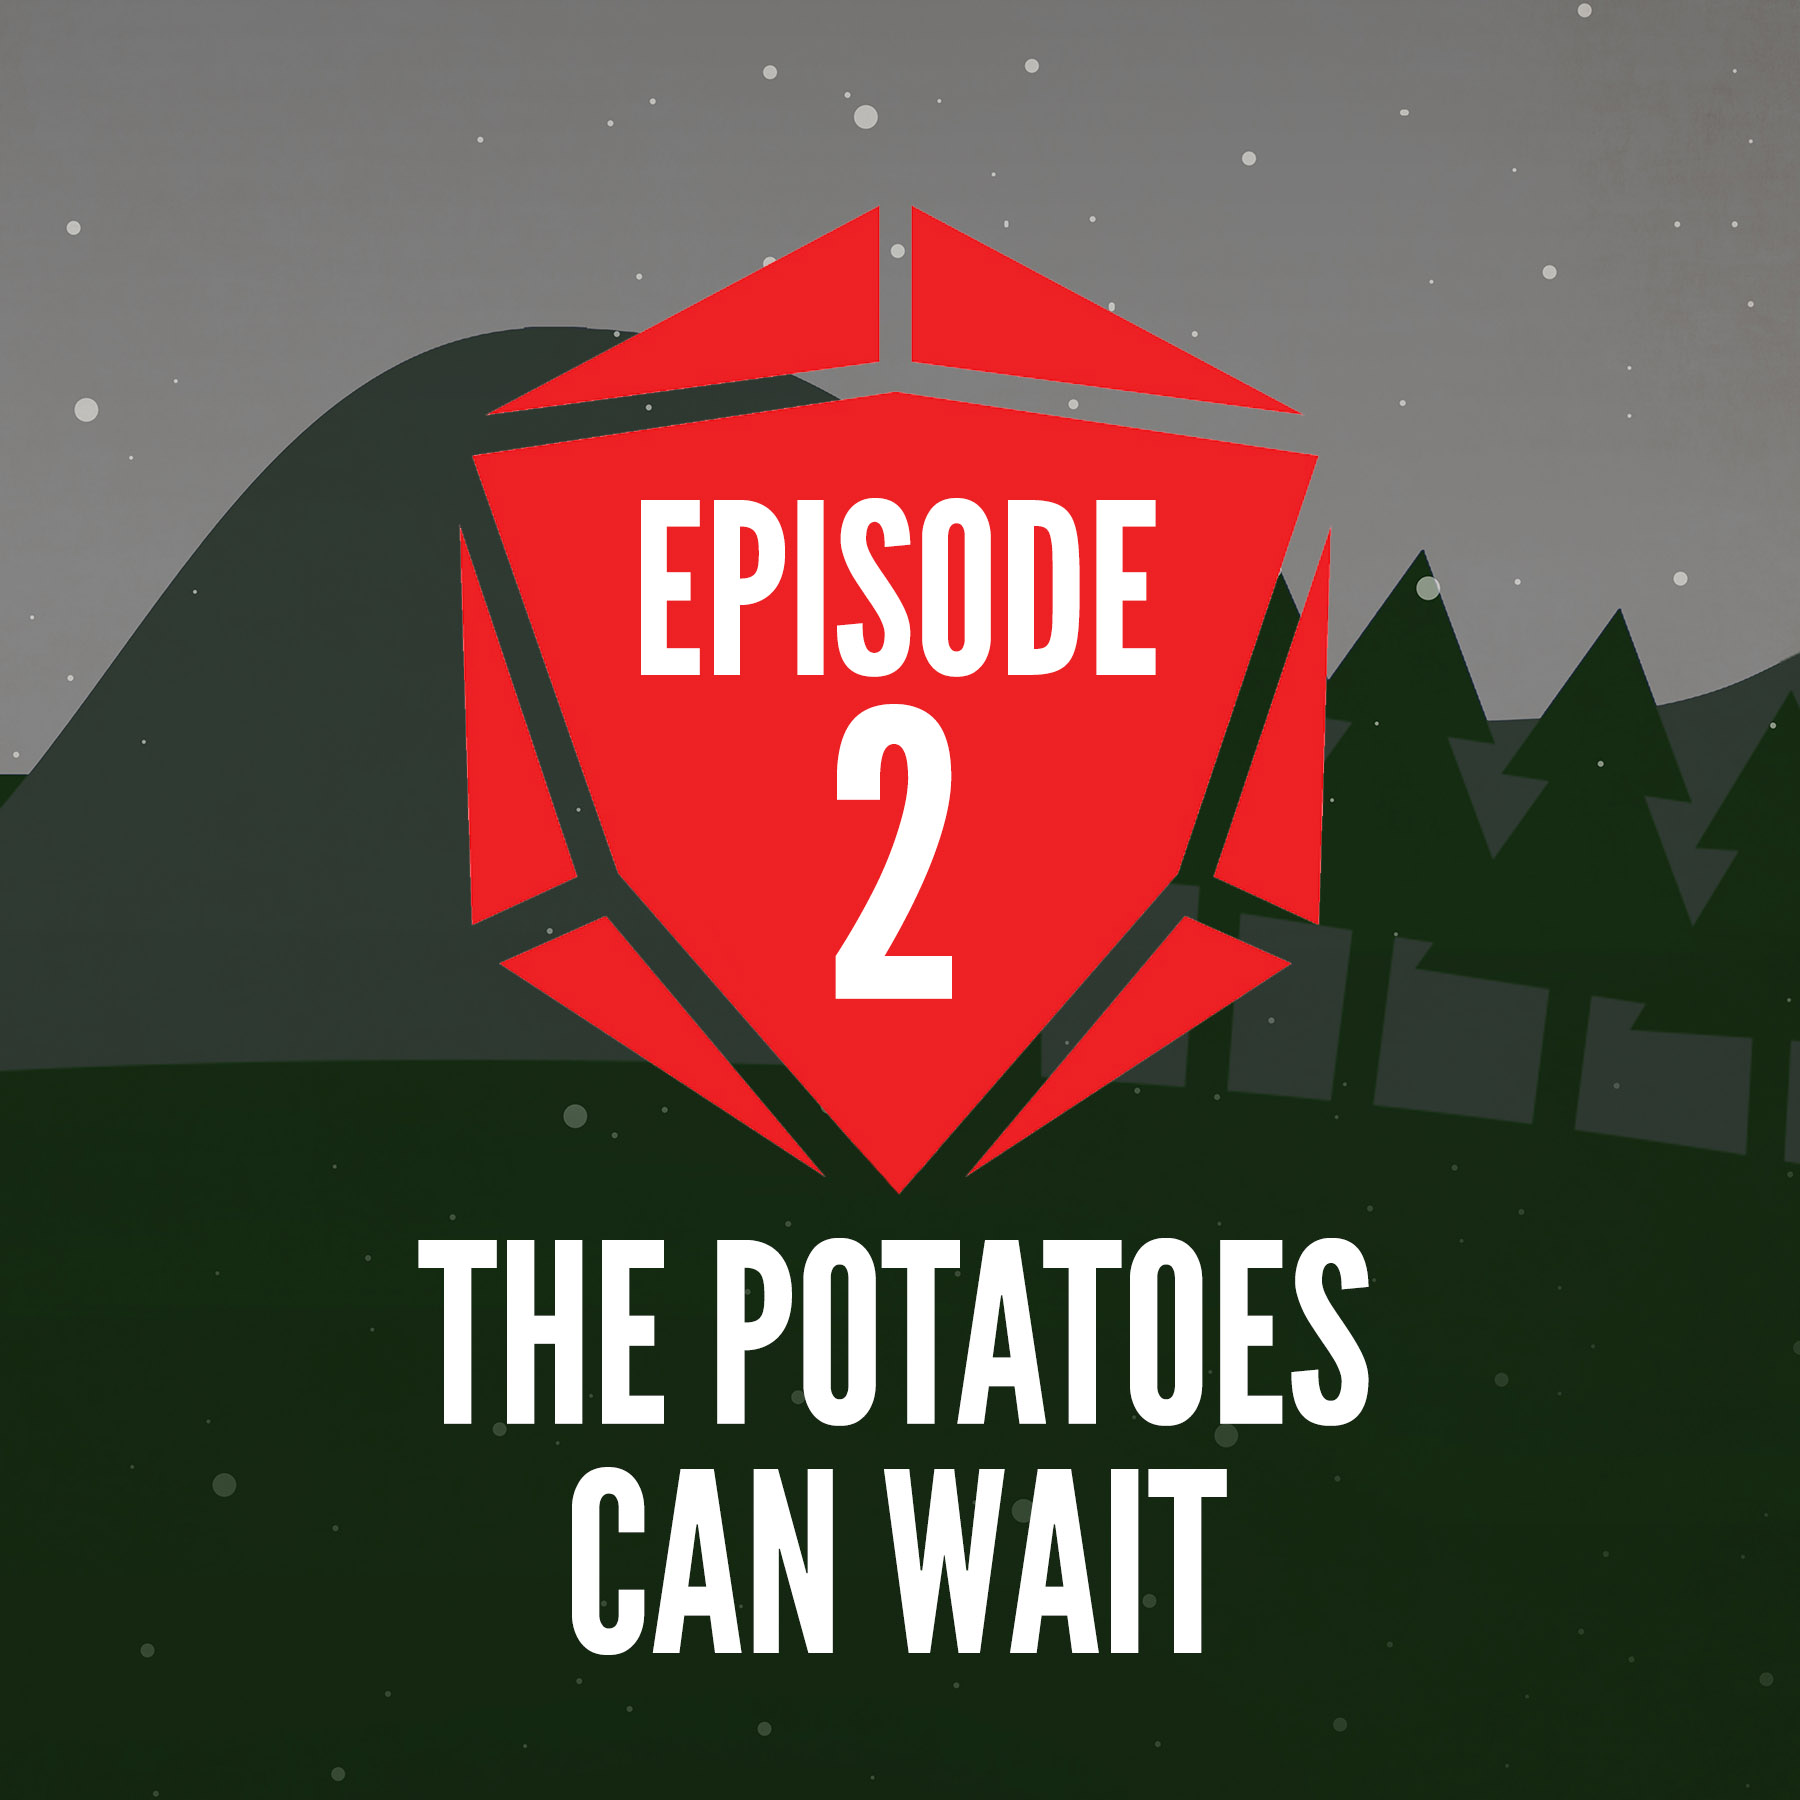 Episode 2: The Potatoes Can Wait